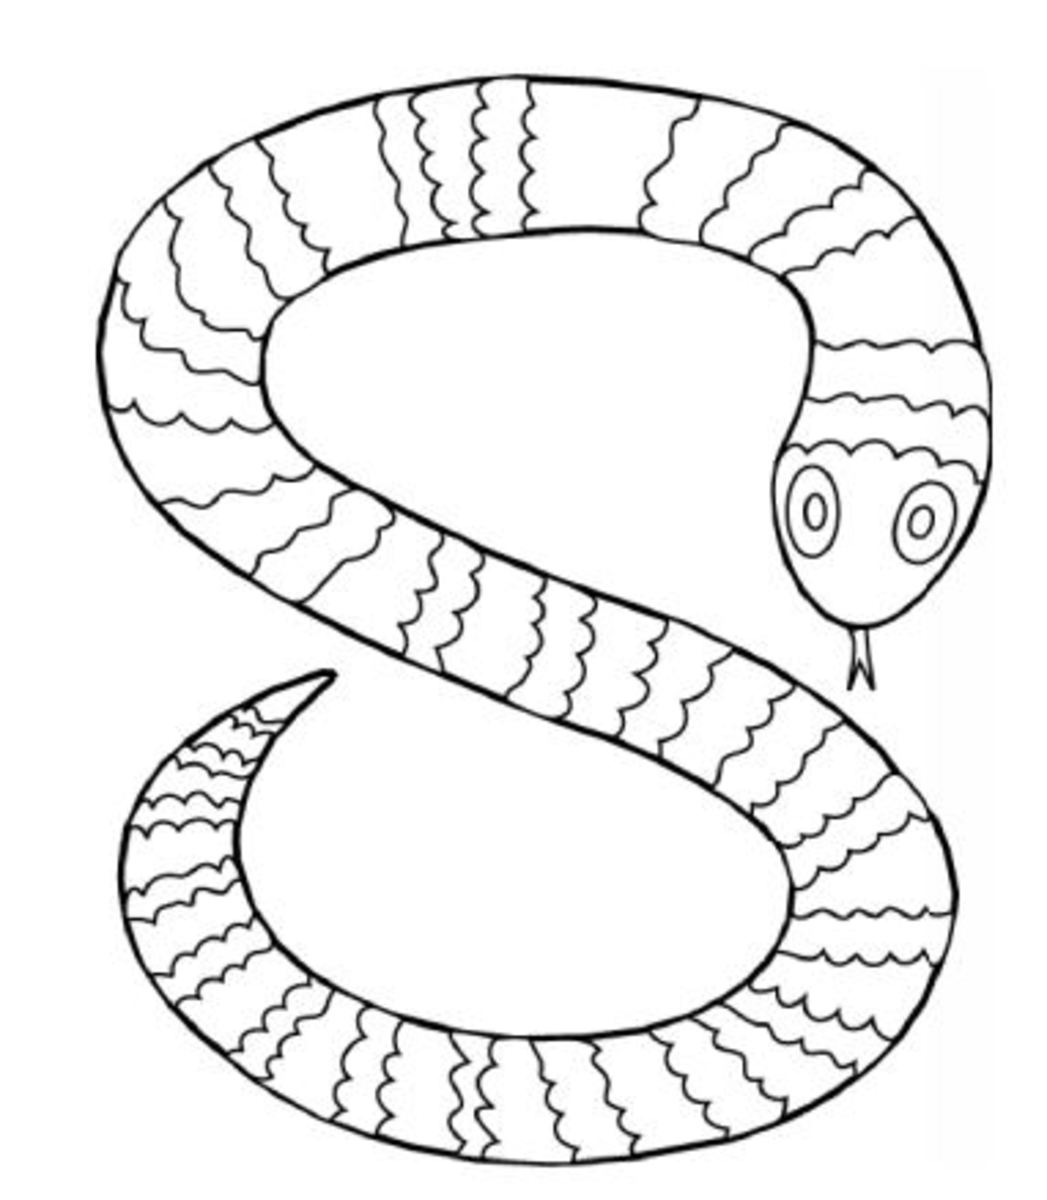 reptiles coloring pages - photo#8